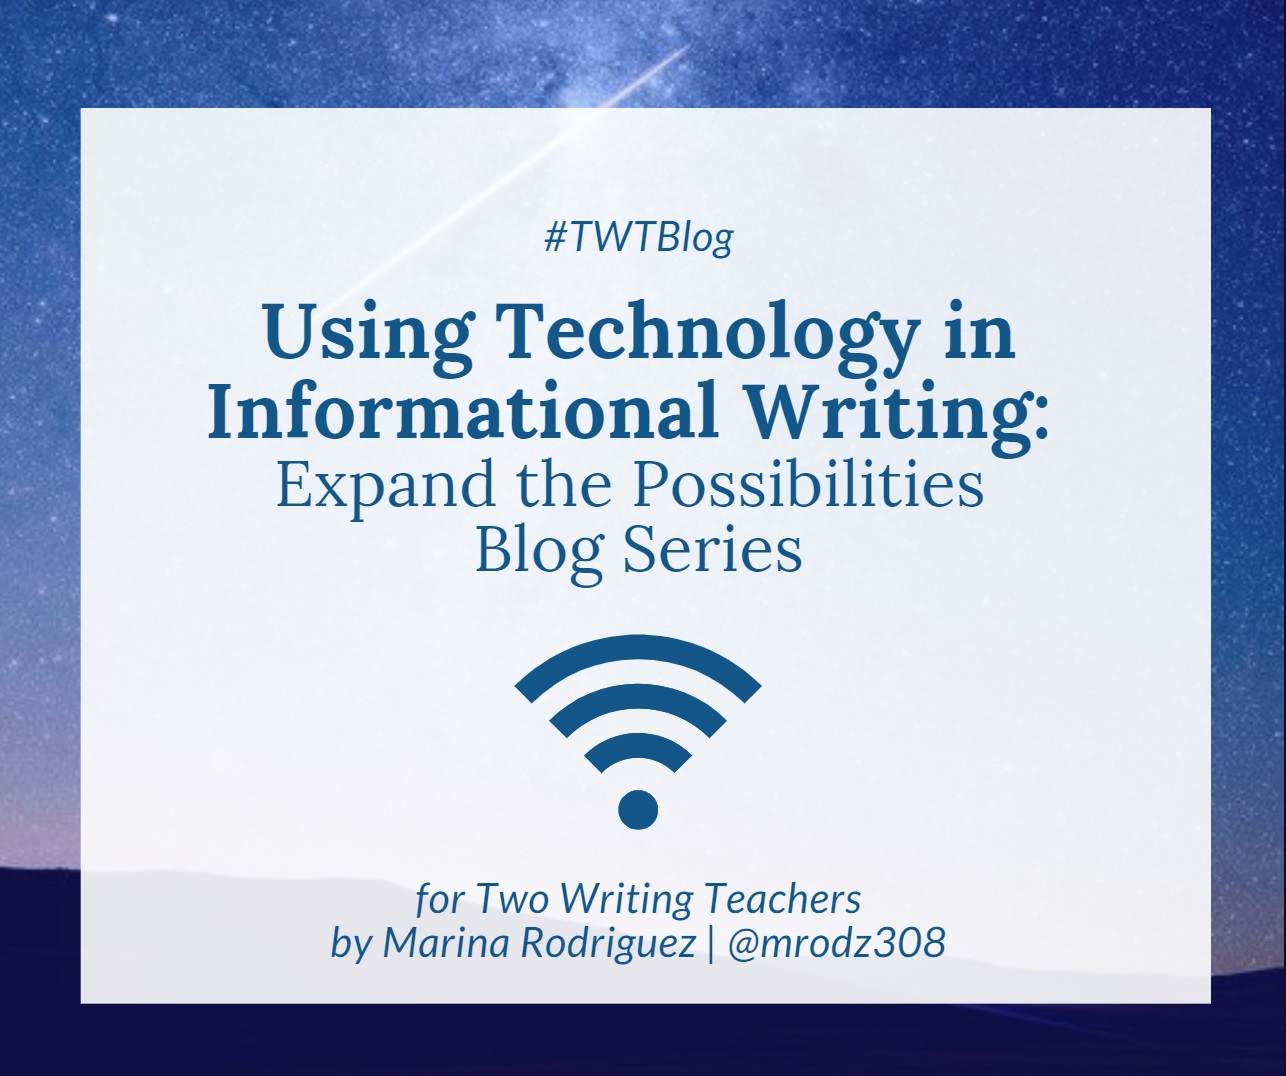 Using Technology in Informational Writing: Expand the Possibilities Blog Series